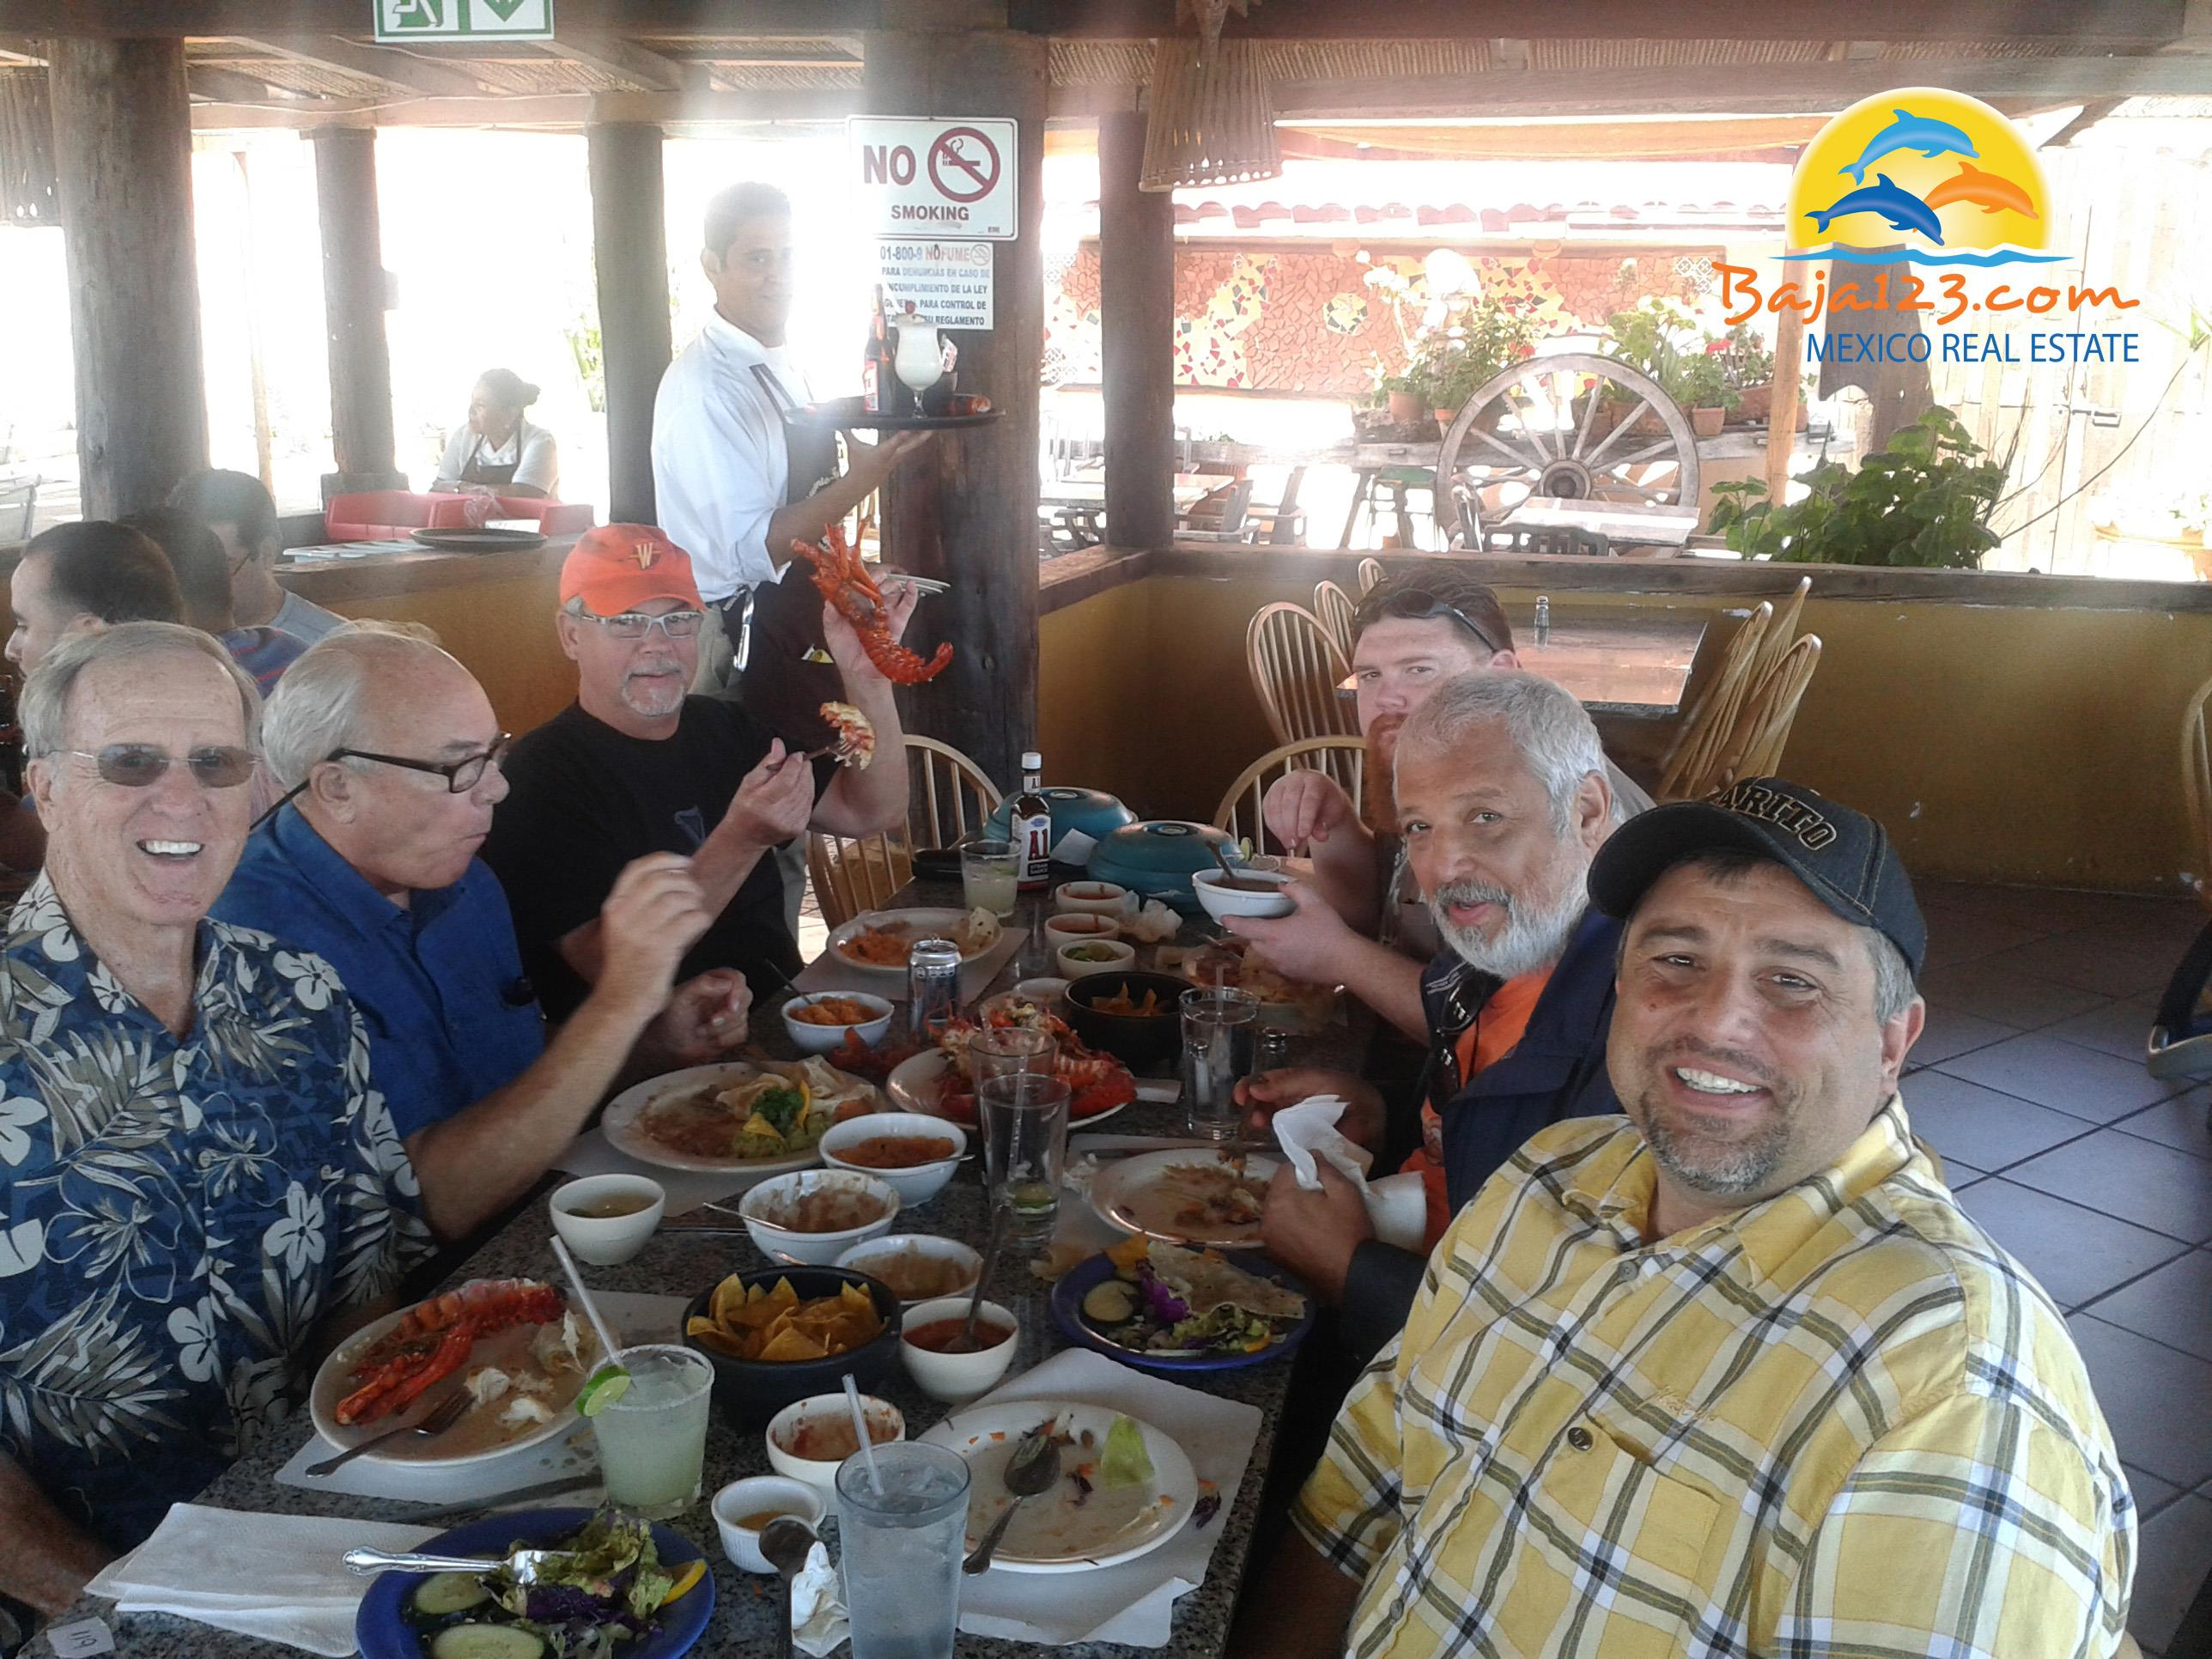 Lunch at Puerto Nuevo before hitting the annual golf game in Ensenada.